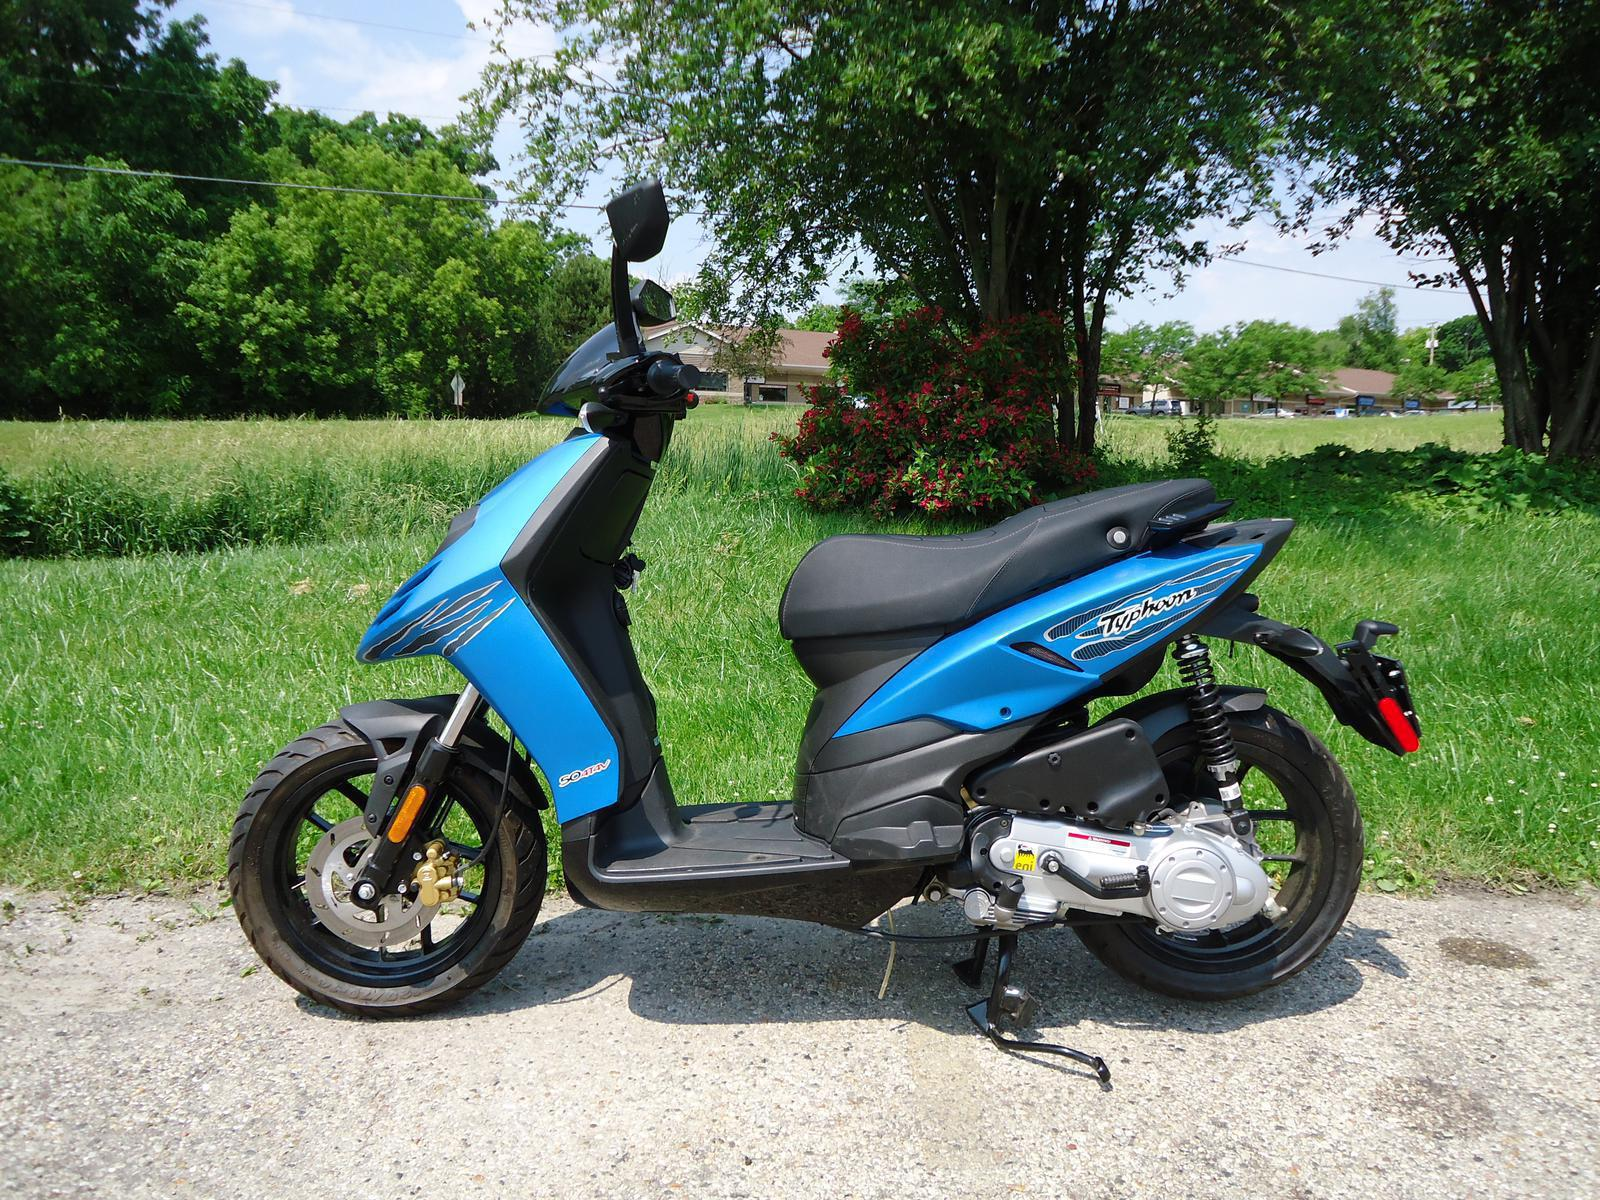 2014 piaggio typhoon moped for sale in lake geneva, wi | scoot